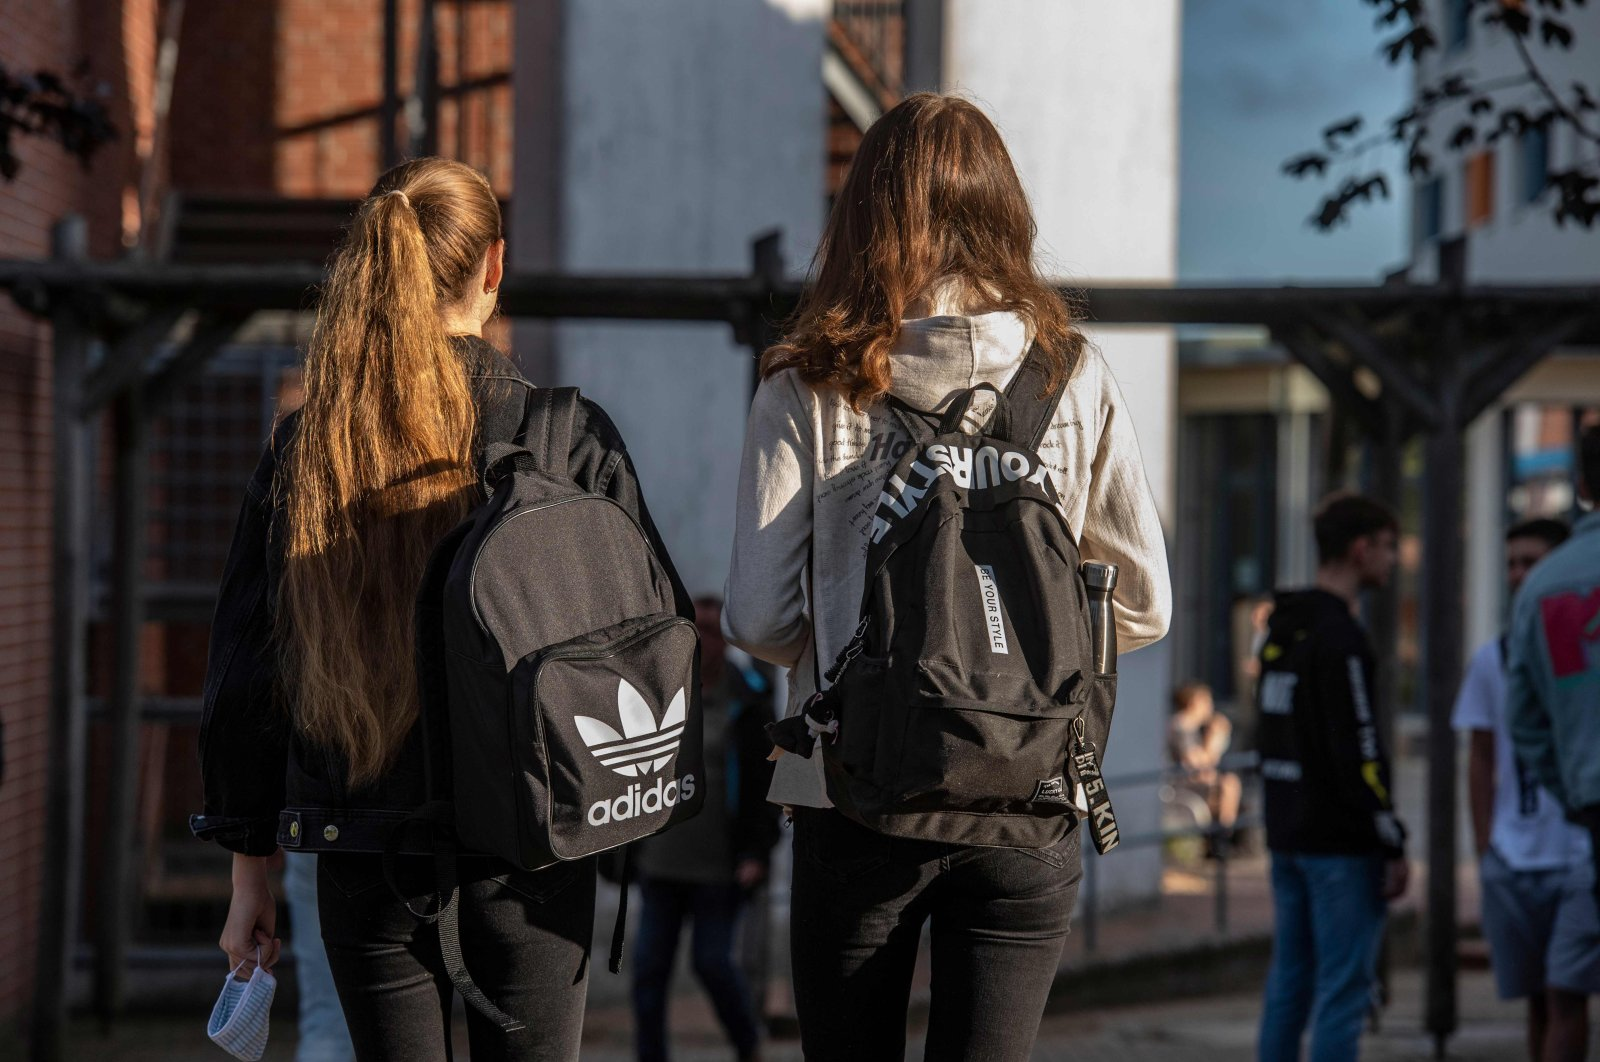 A student (L) carries a face mask as she heads into the Christophorusschule school in Rostock on Aug. 3, 2020. (AFP Photo)